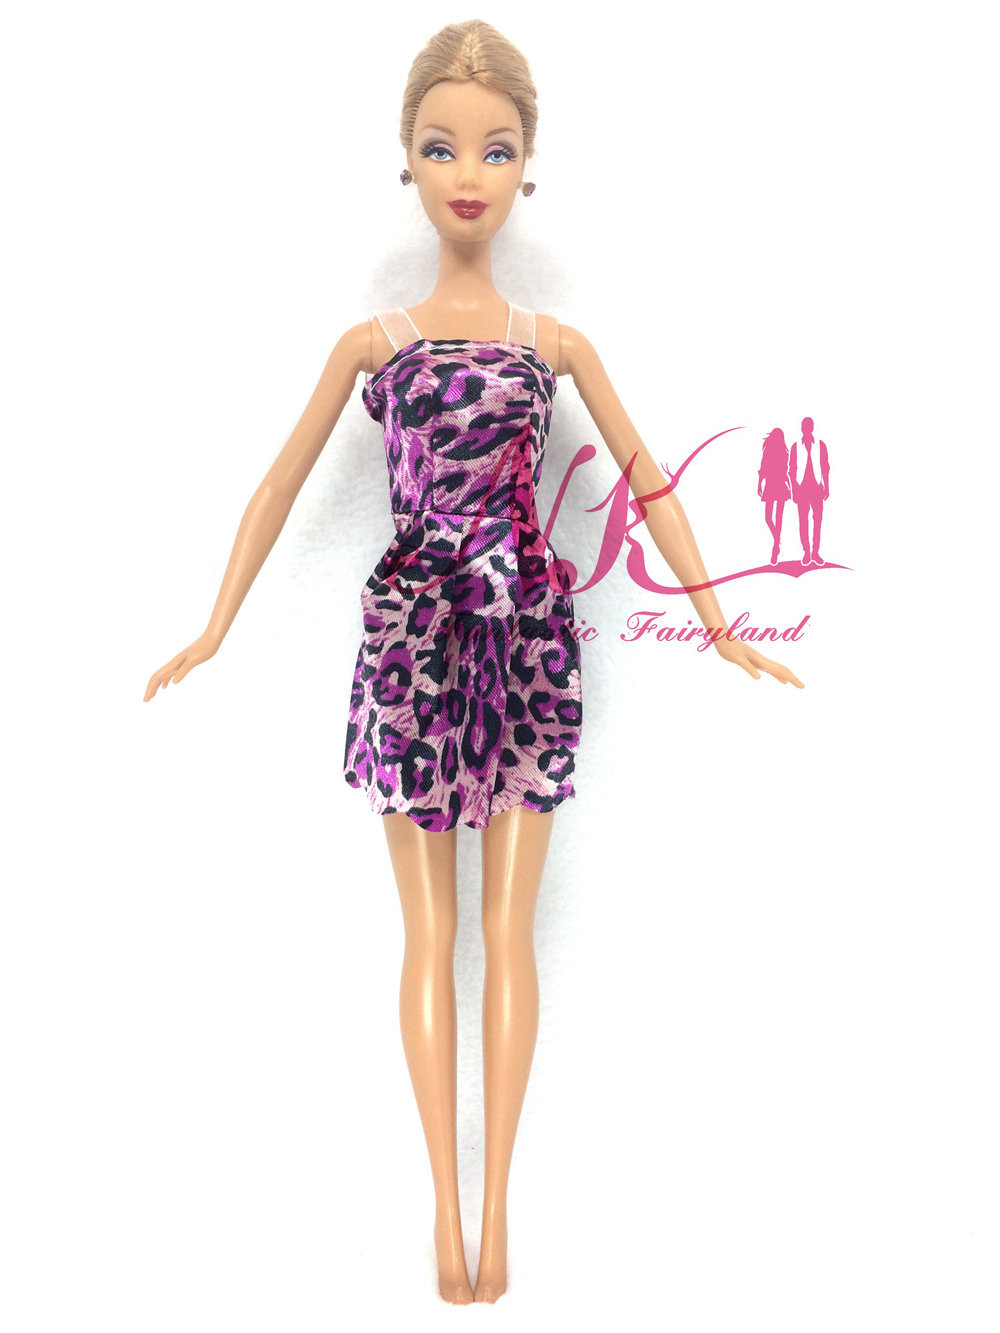 NK 2016 Latest Doll Gown Stunning Handmade Social gathering ClothesTop Trend Gown For Barbie Noble Doll Greatest Youngster Ladies'Reward 027C